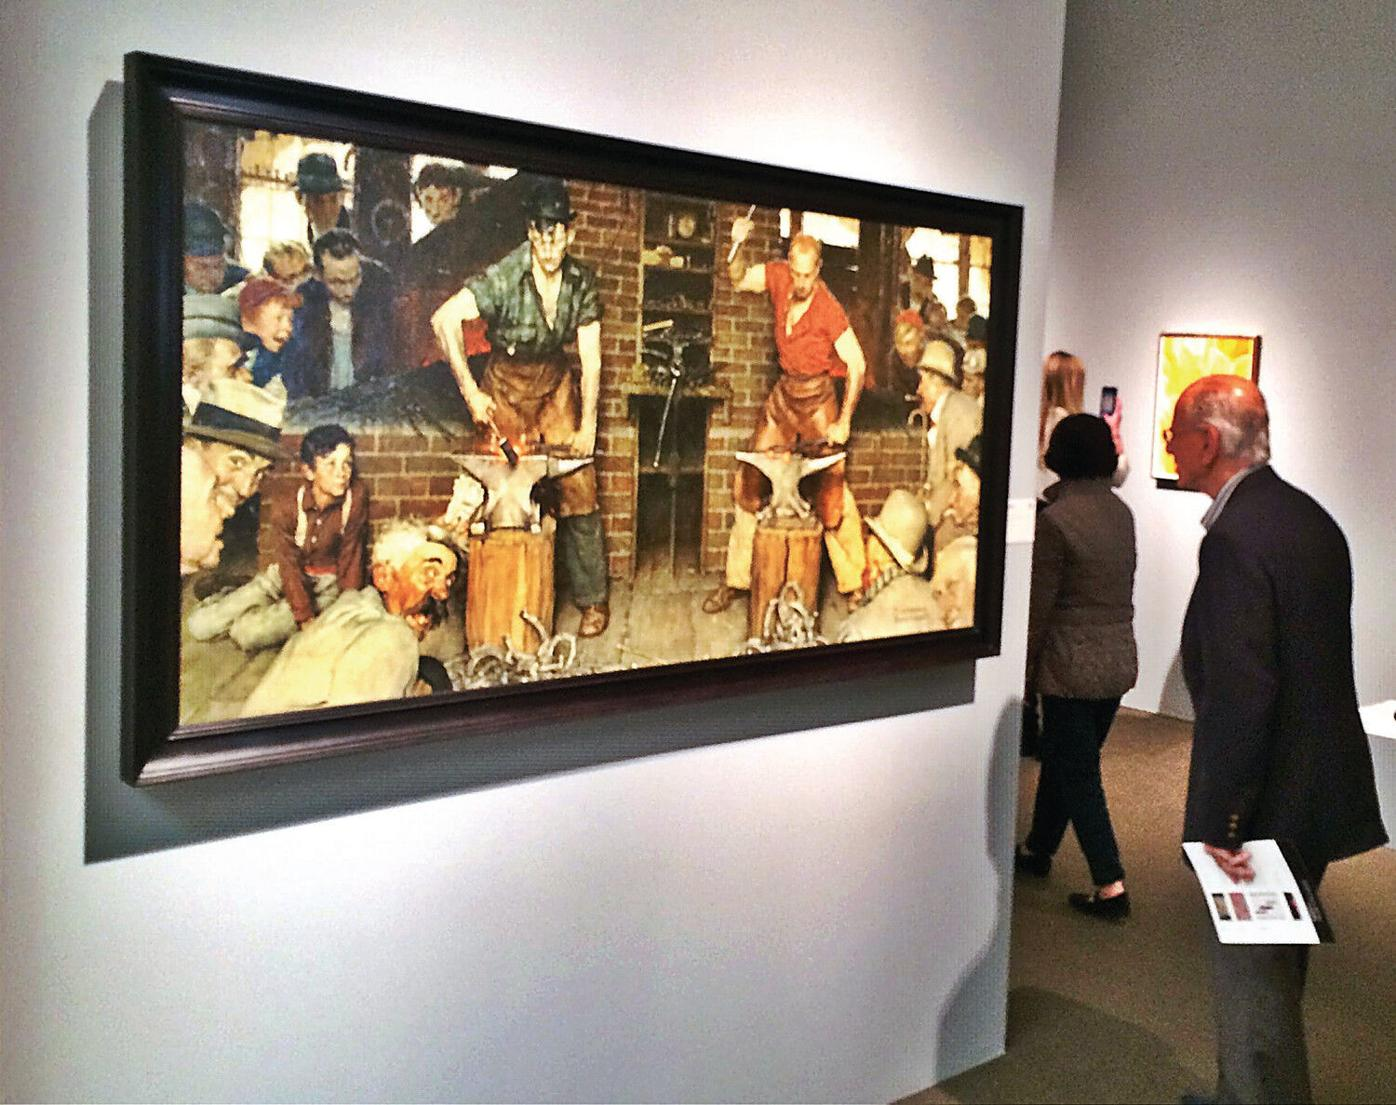 Rockwell paintings draw visitors to Sotheby's, elicit public displays of affection